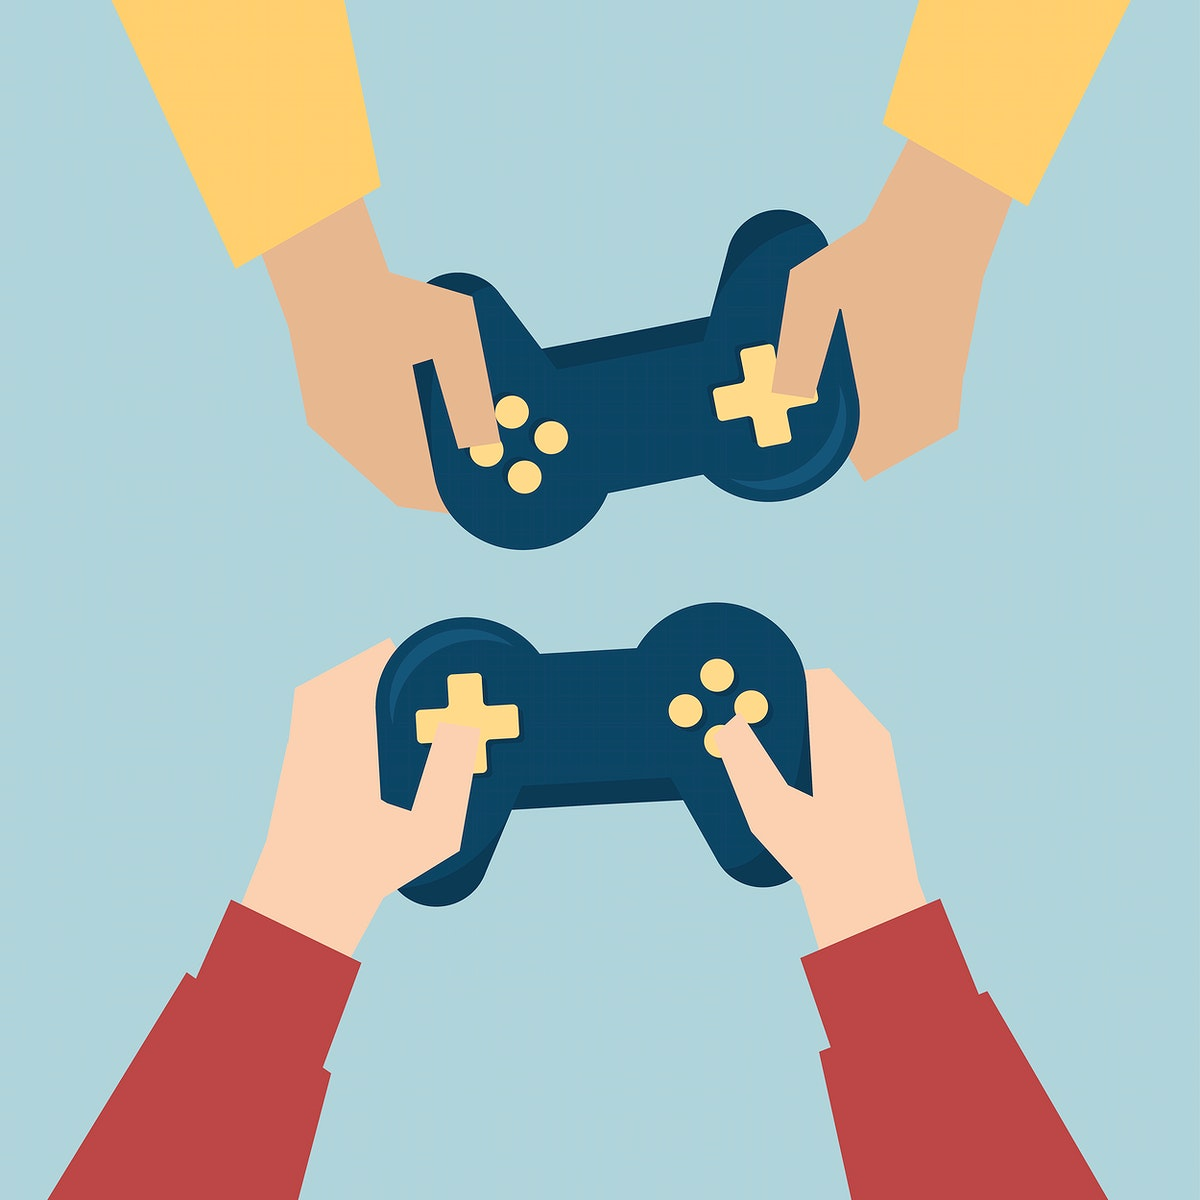 Hands holding game consoles illustration